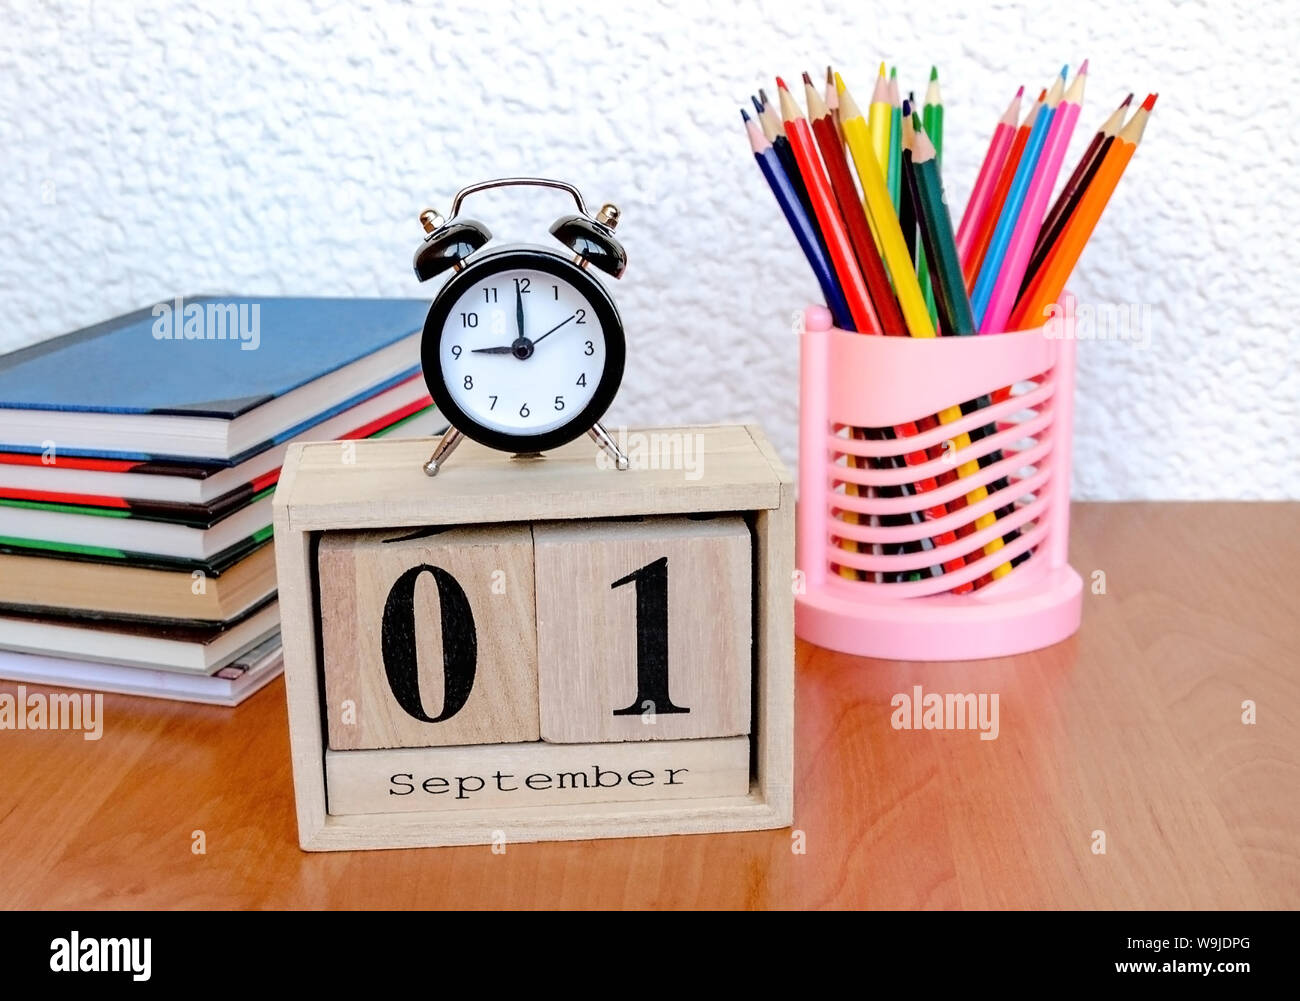 intermittent wooden calendar with the date of the first of September and an alarm clock, colored pencils on the table, a reminder of the school, close Stock Photo